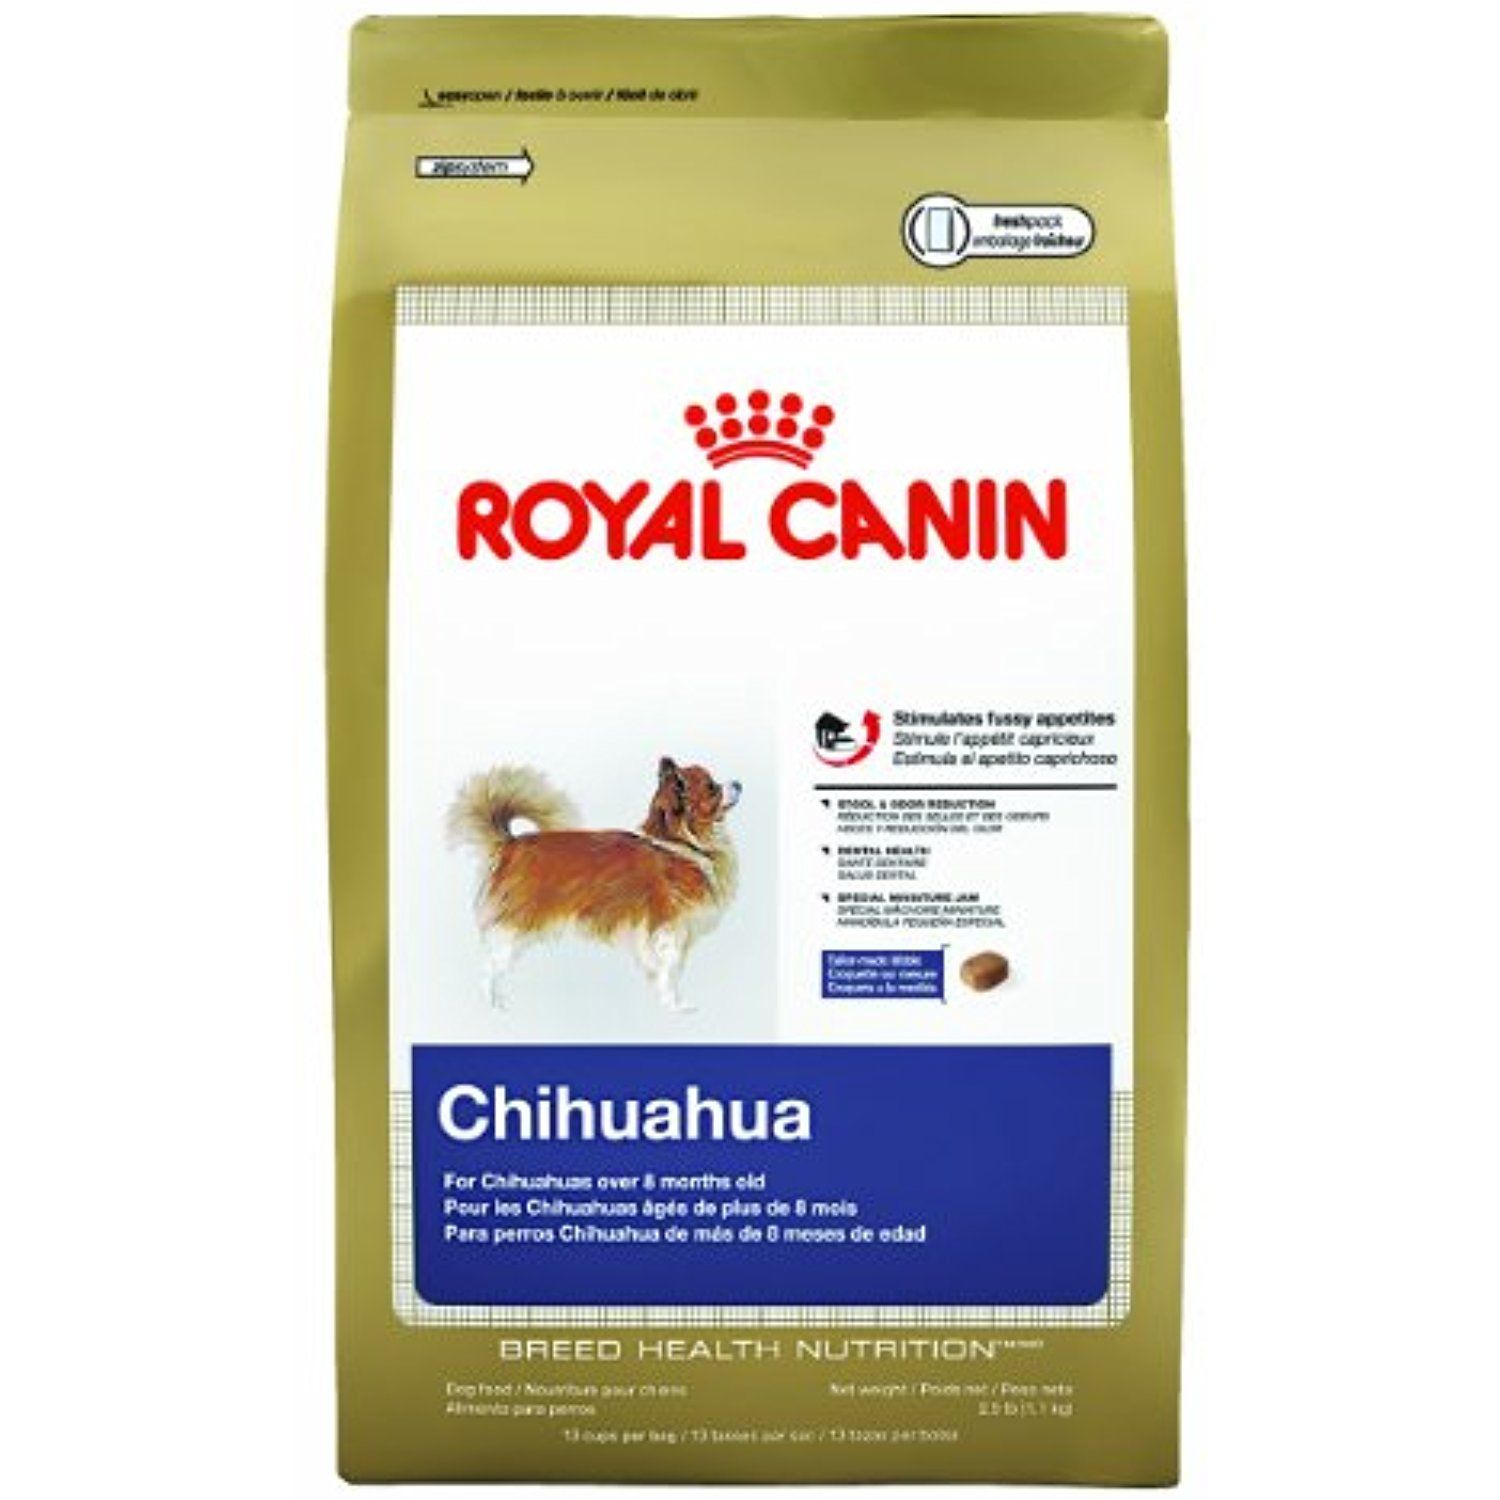 Royal Canin Chihuahua Dry Dog Food 10 Pound You Can Click On